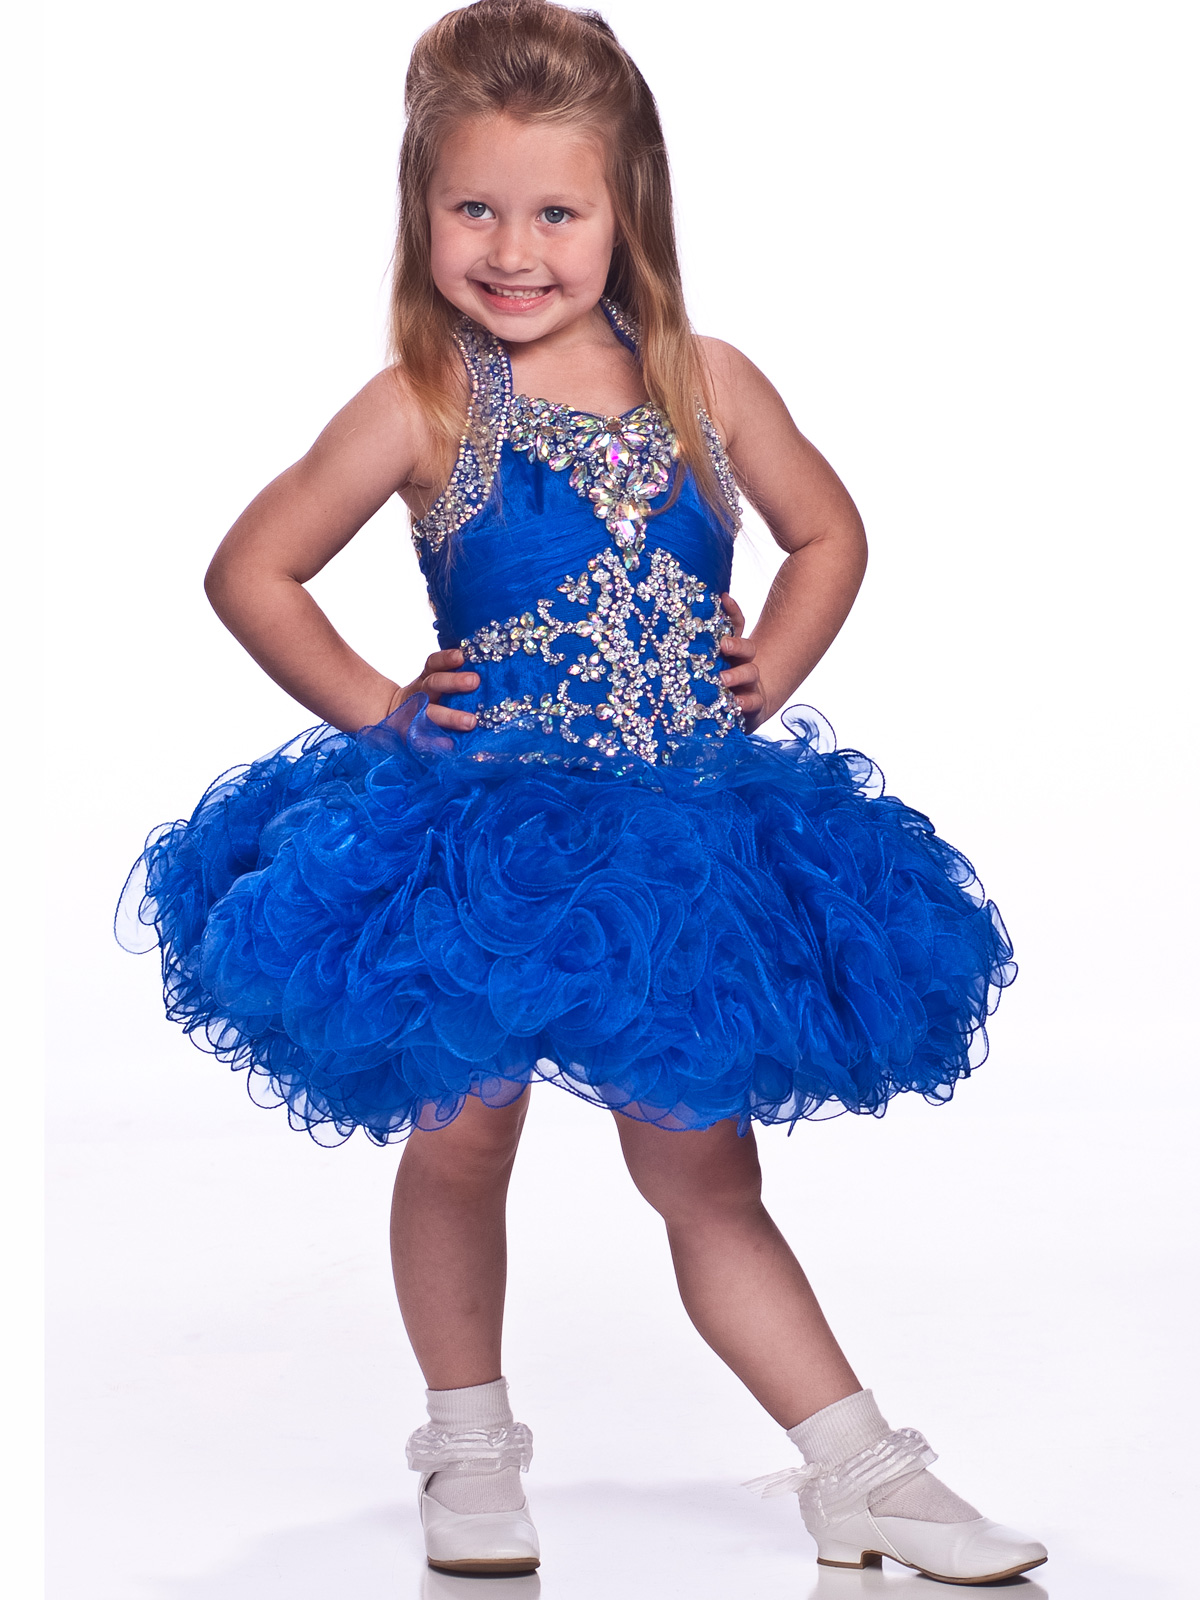 Halter Ruffled Skirt Girls Short Pageant Dress By Unique Fashion     Beaded Shoulder Straps Unique Fashion Short Pageant Dress For Girls UF1090